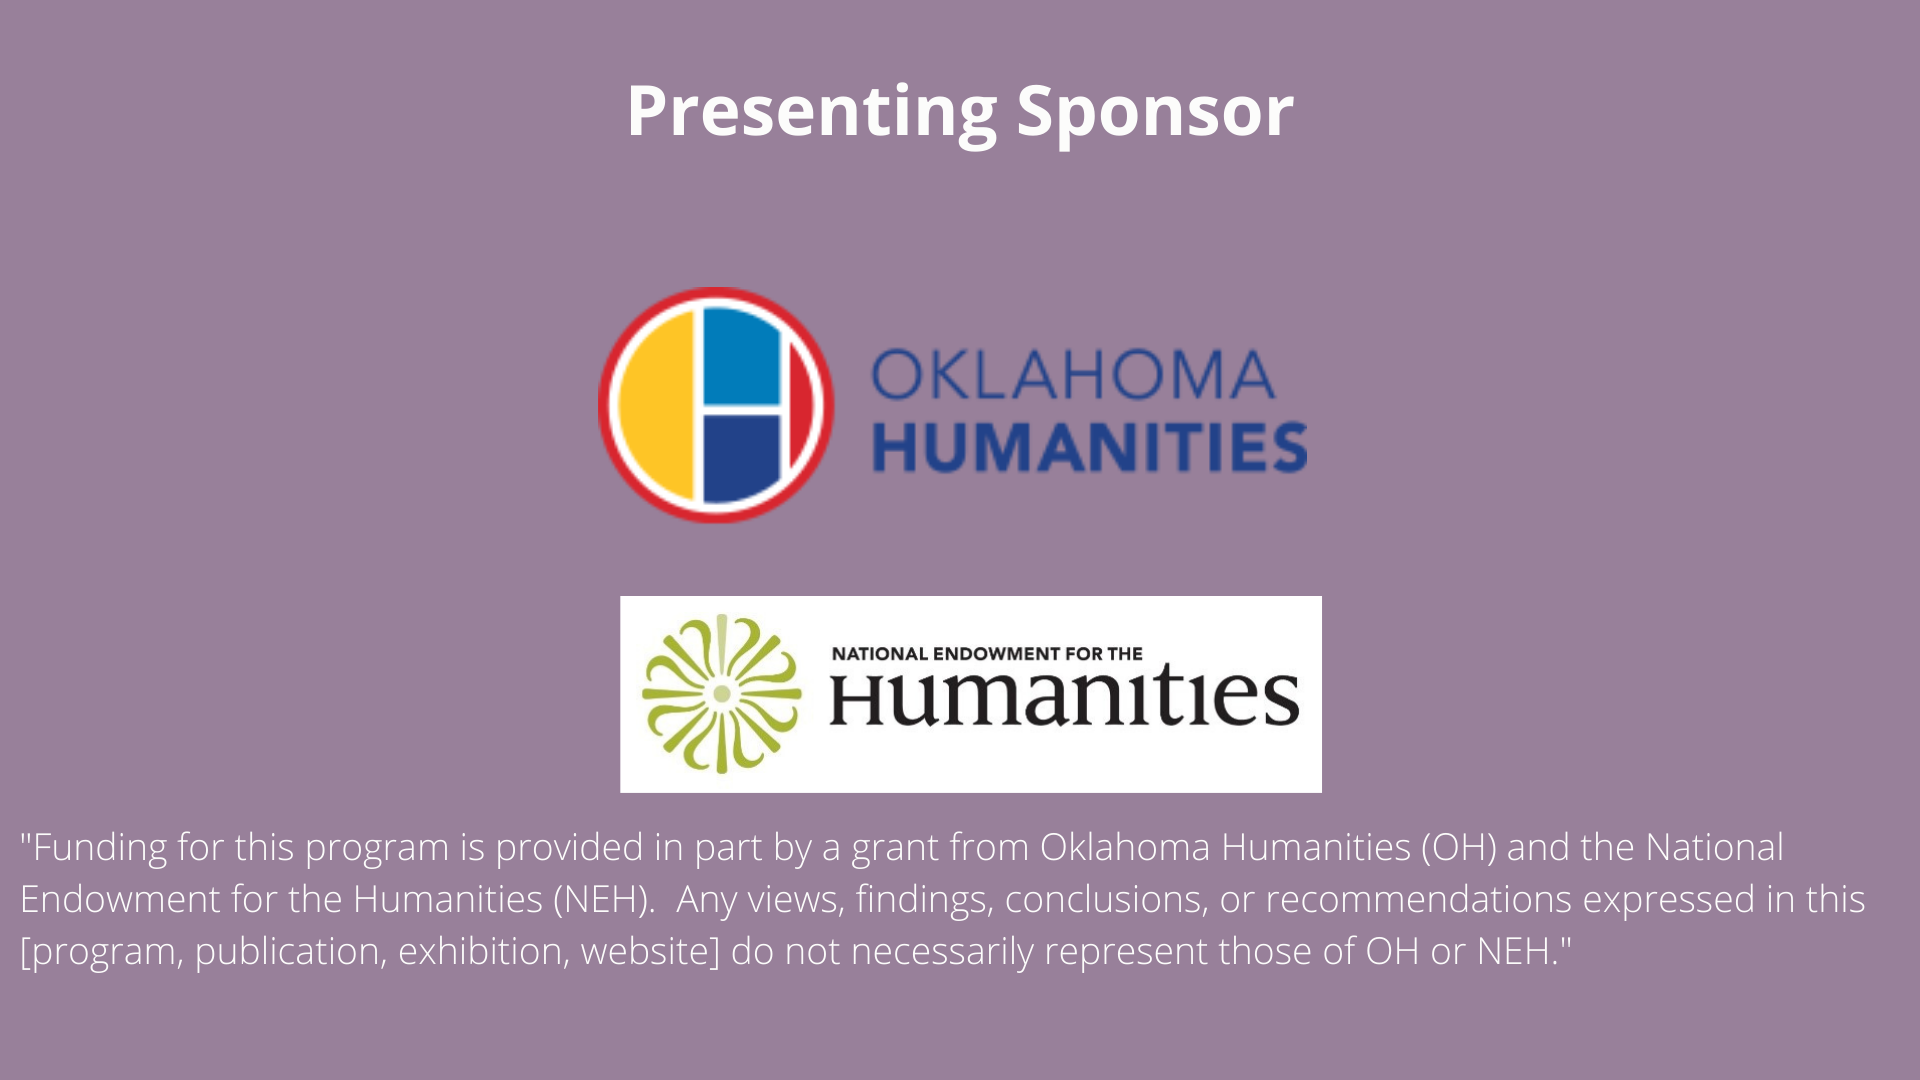 Oklahoma Humanities - National Endowment for the Humanities